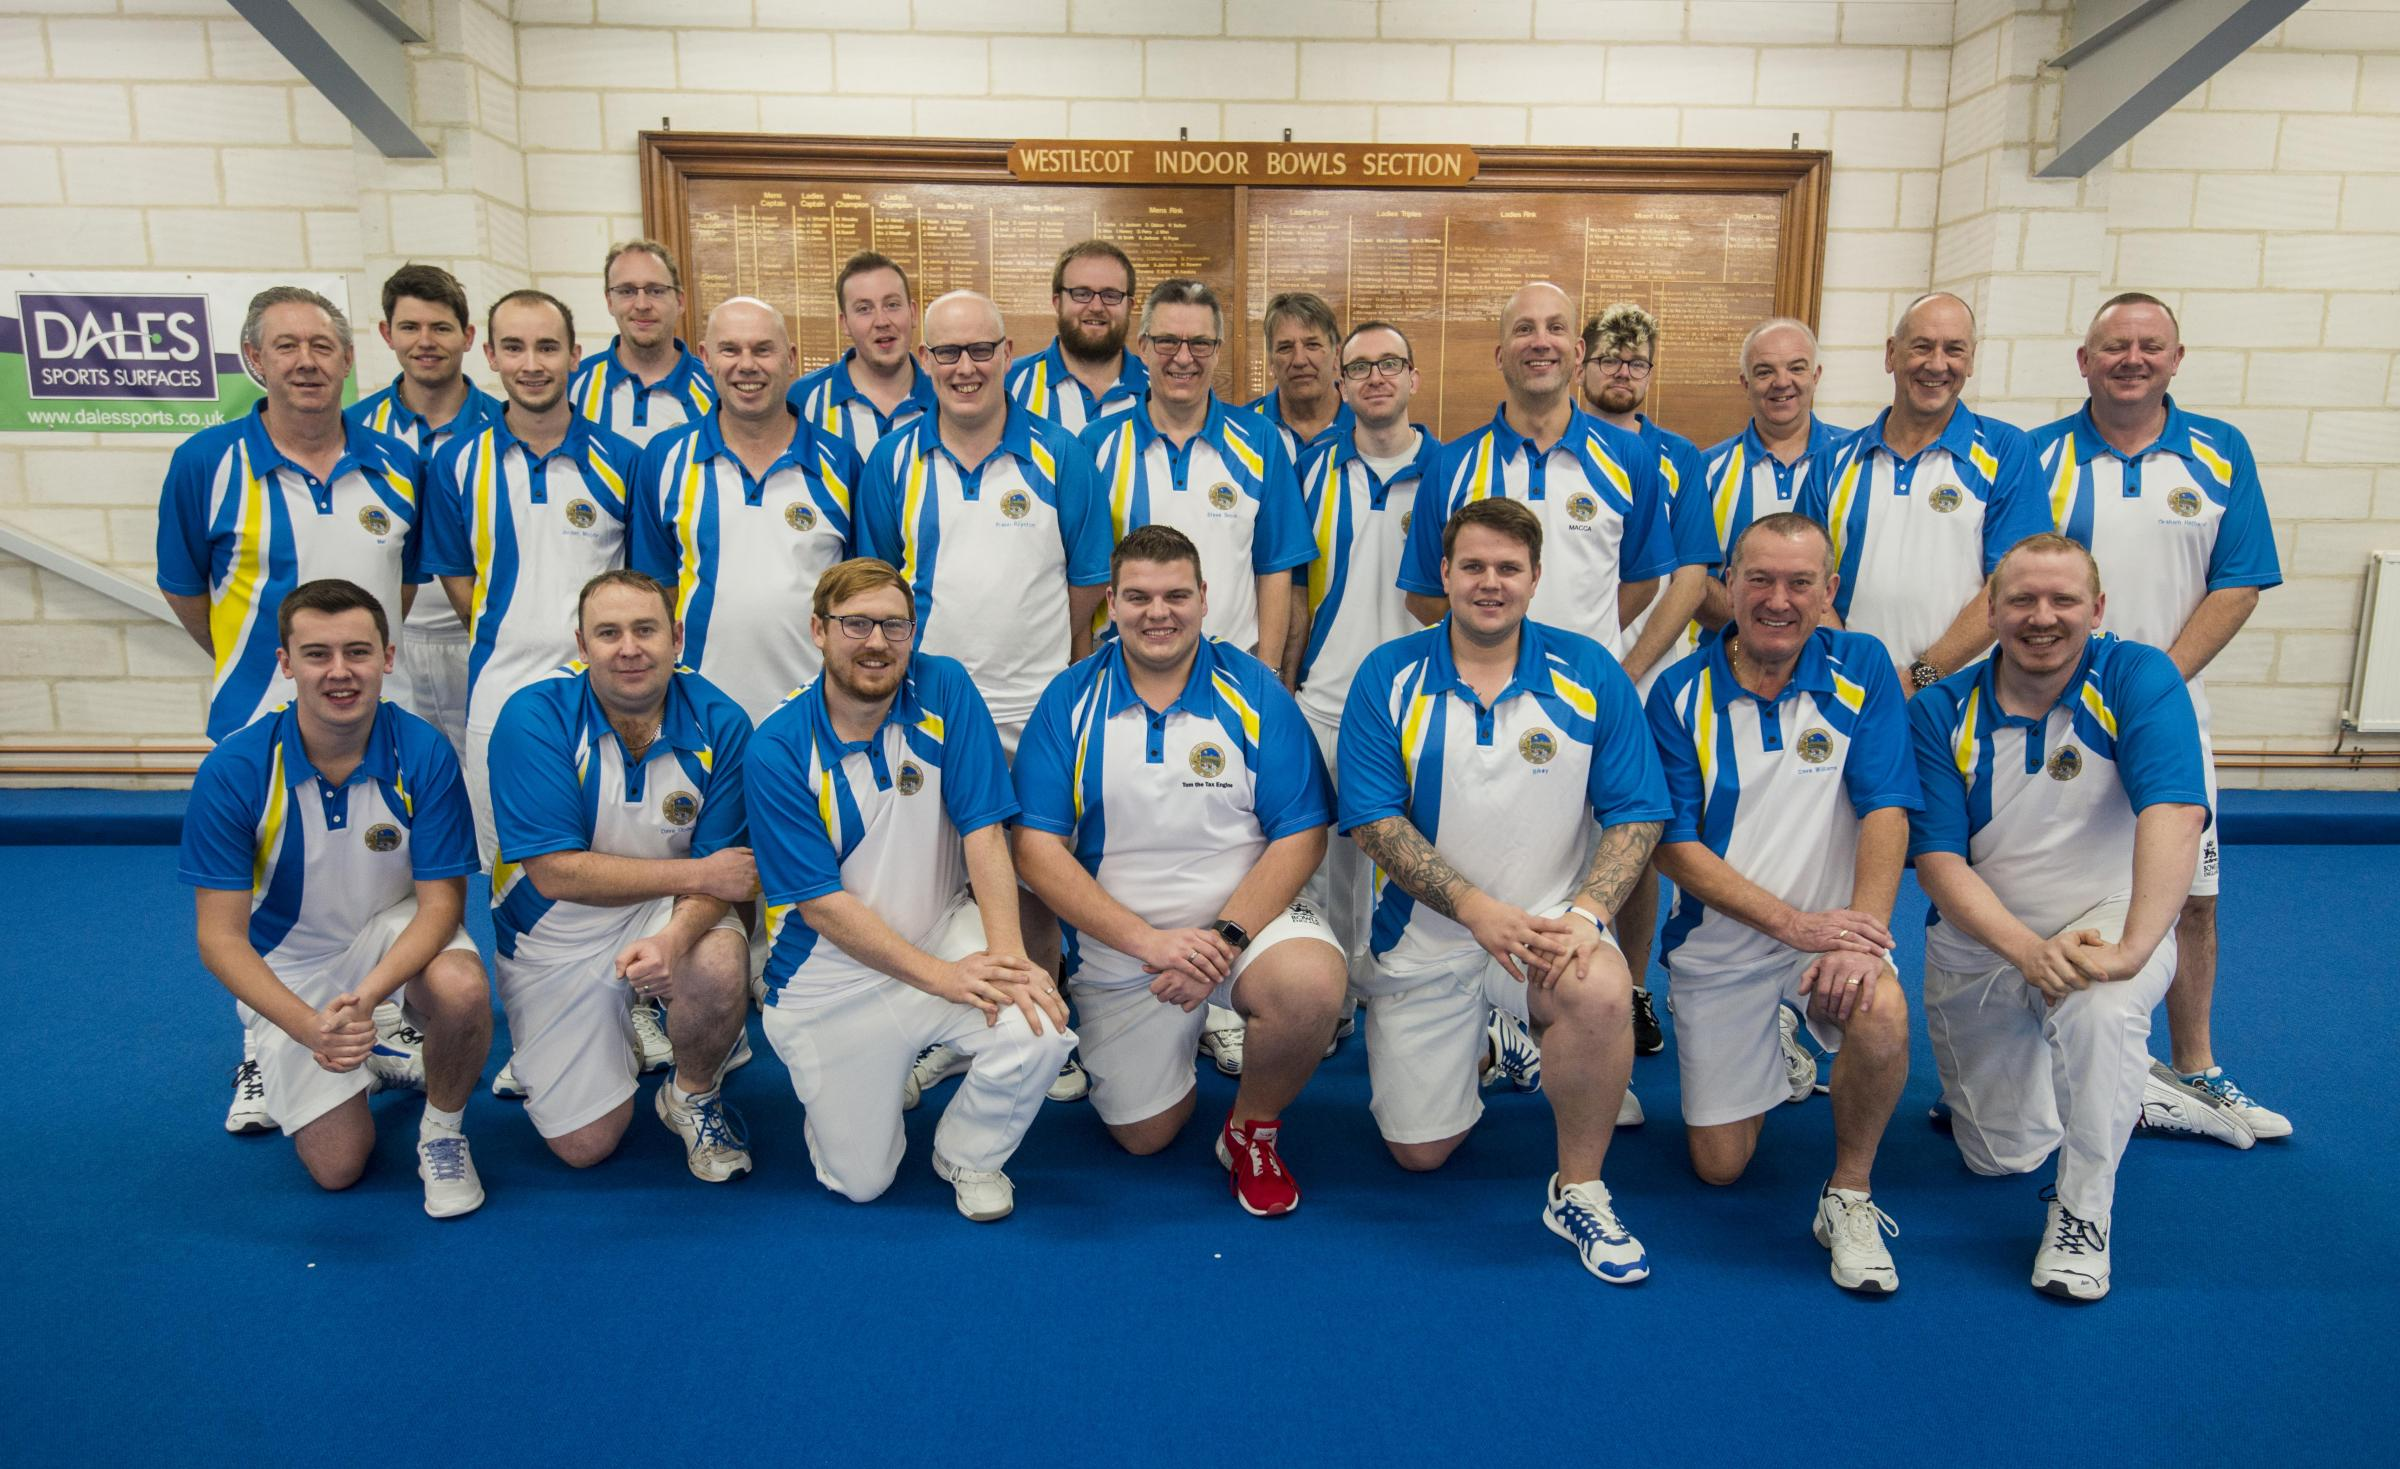 BOWLS: Top Club joy for Westlecot